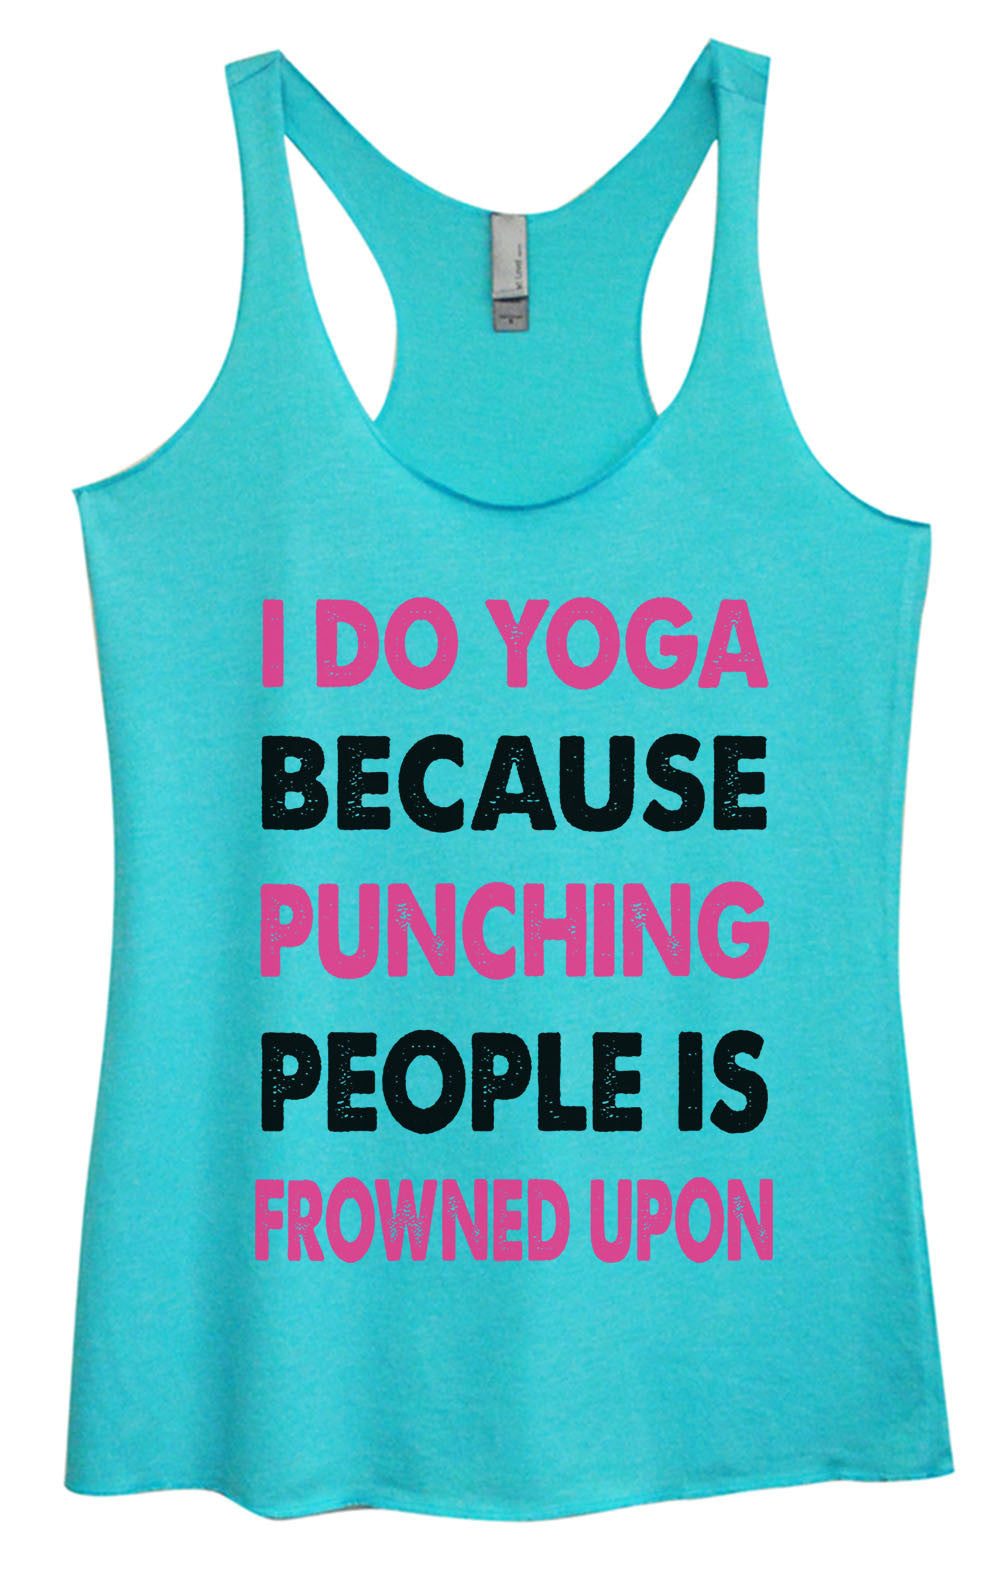 Womens Fashion Triblend Tank Top - I Do Yoga Because Punching People Is Frowned Upon - Tri-685 - Funny Shirts Tank Tops Burnouts and Triblends  - 4